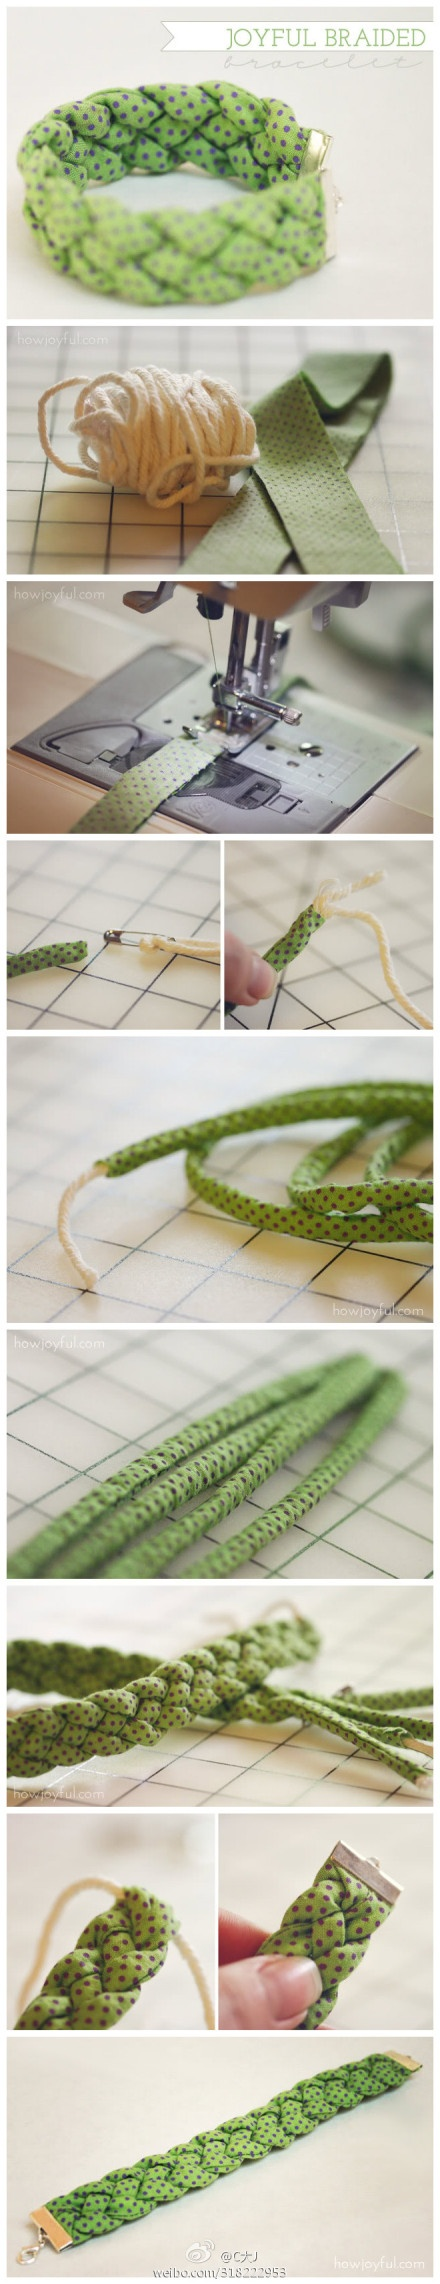 Oh Yes Please! Fabric Braiding